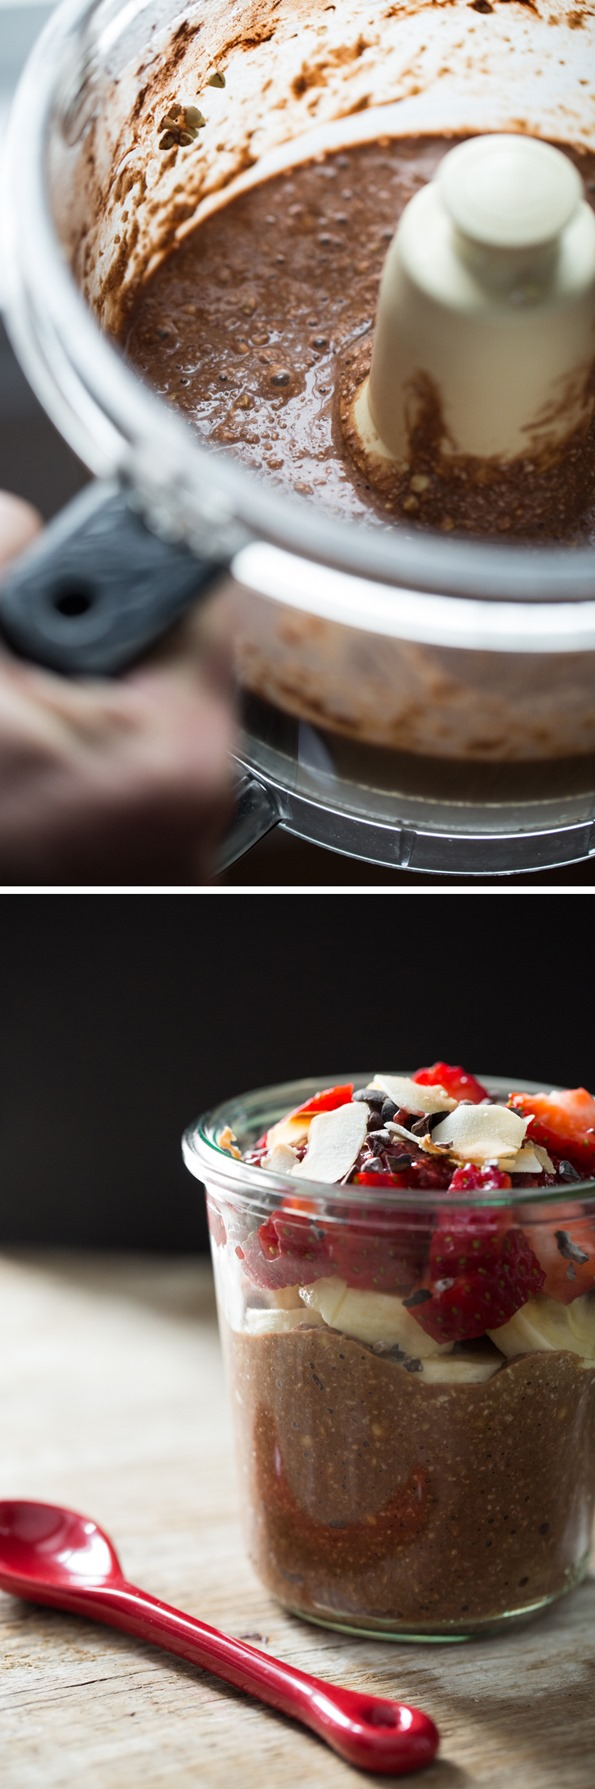 buckwheatporridgevegan   Raw Chocolate Hazelnut Breakfast Parfait + Book News